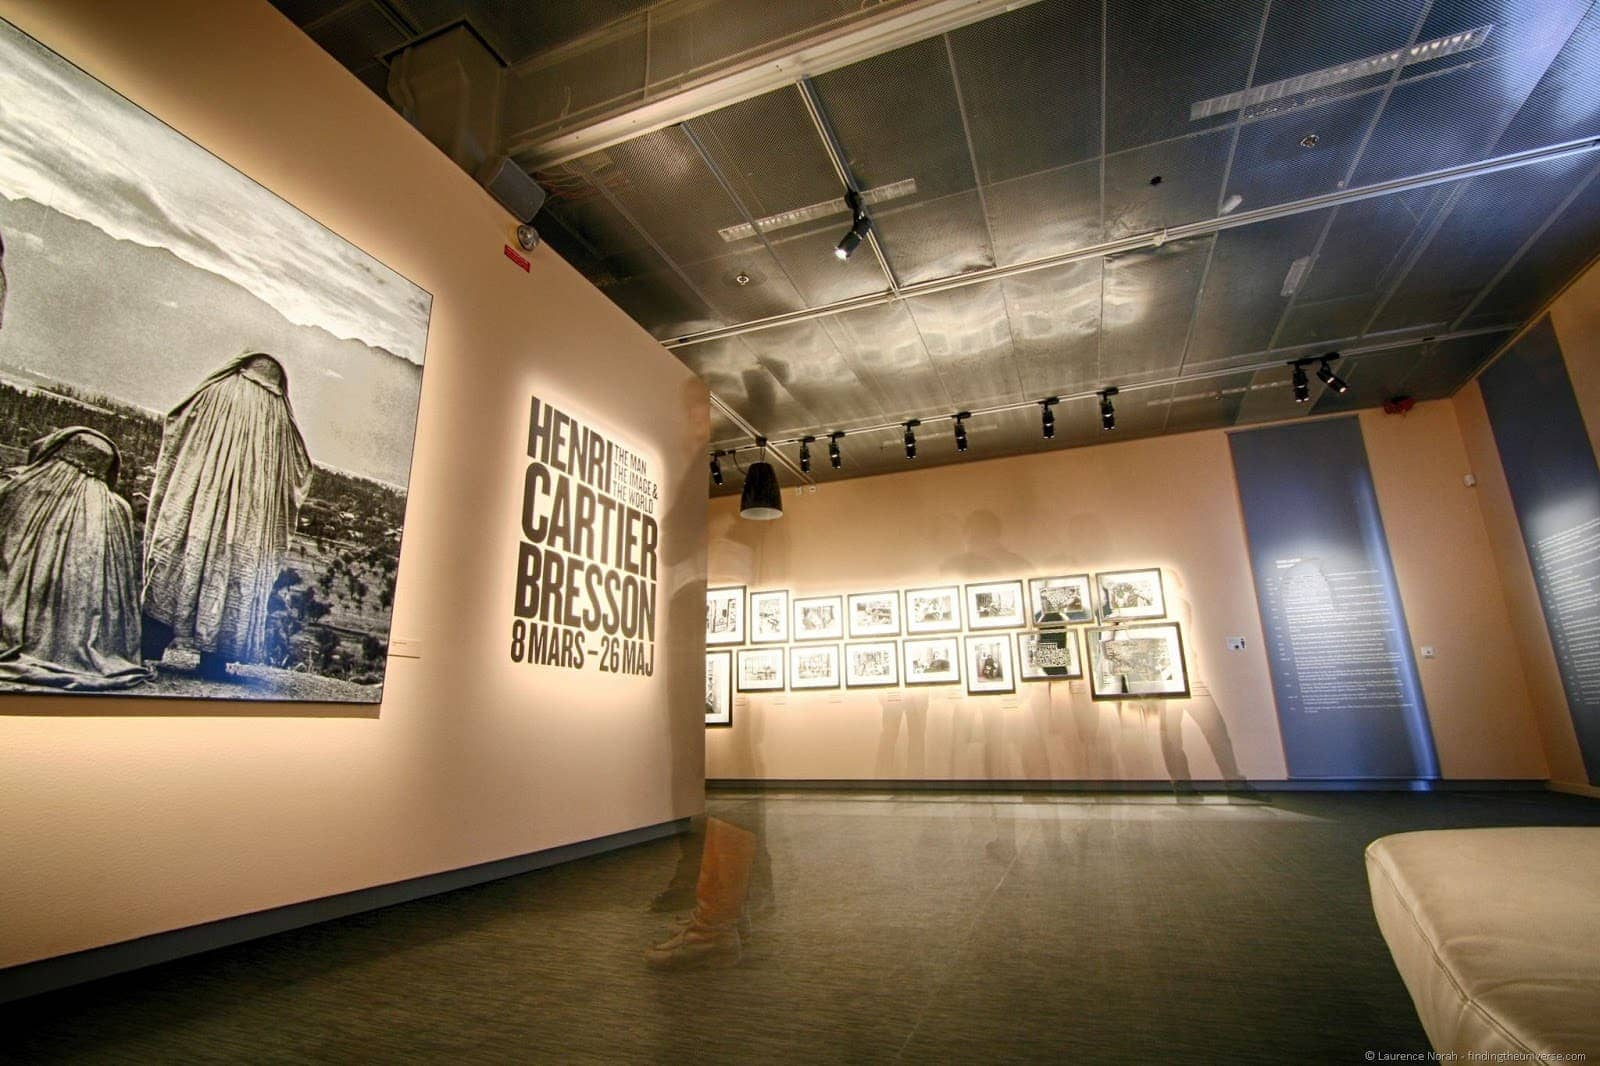 Henri Carter Bresson display fotografiska Stockholm sweden